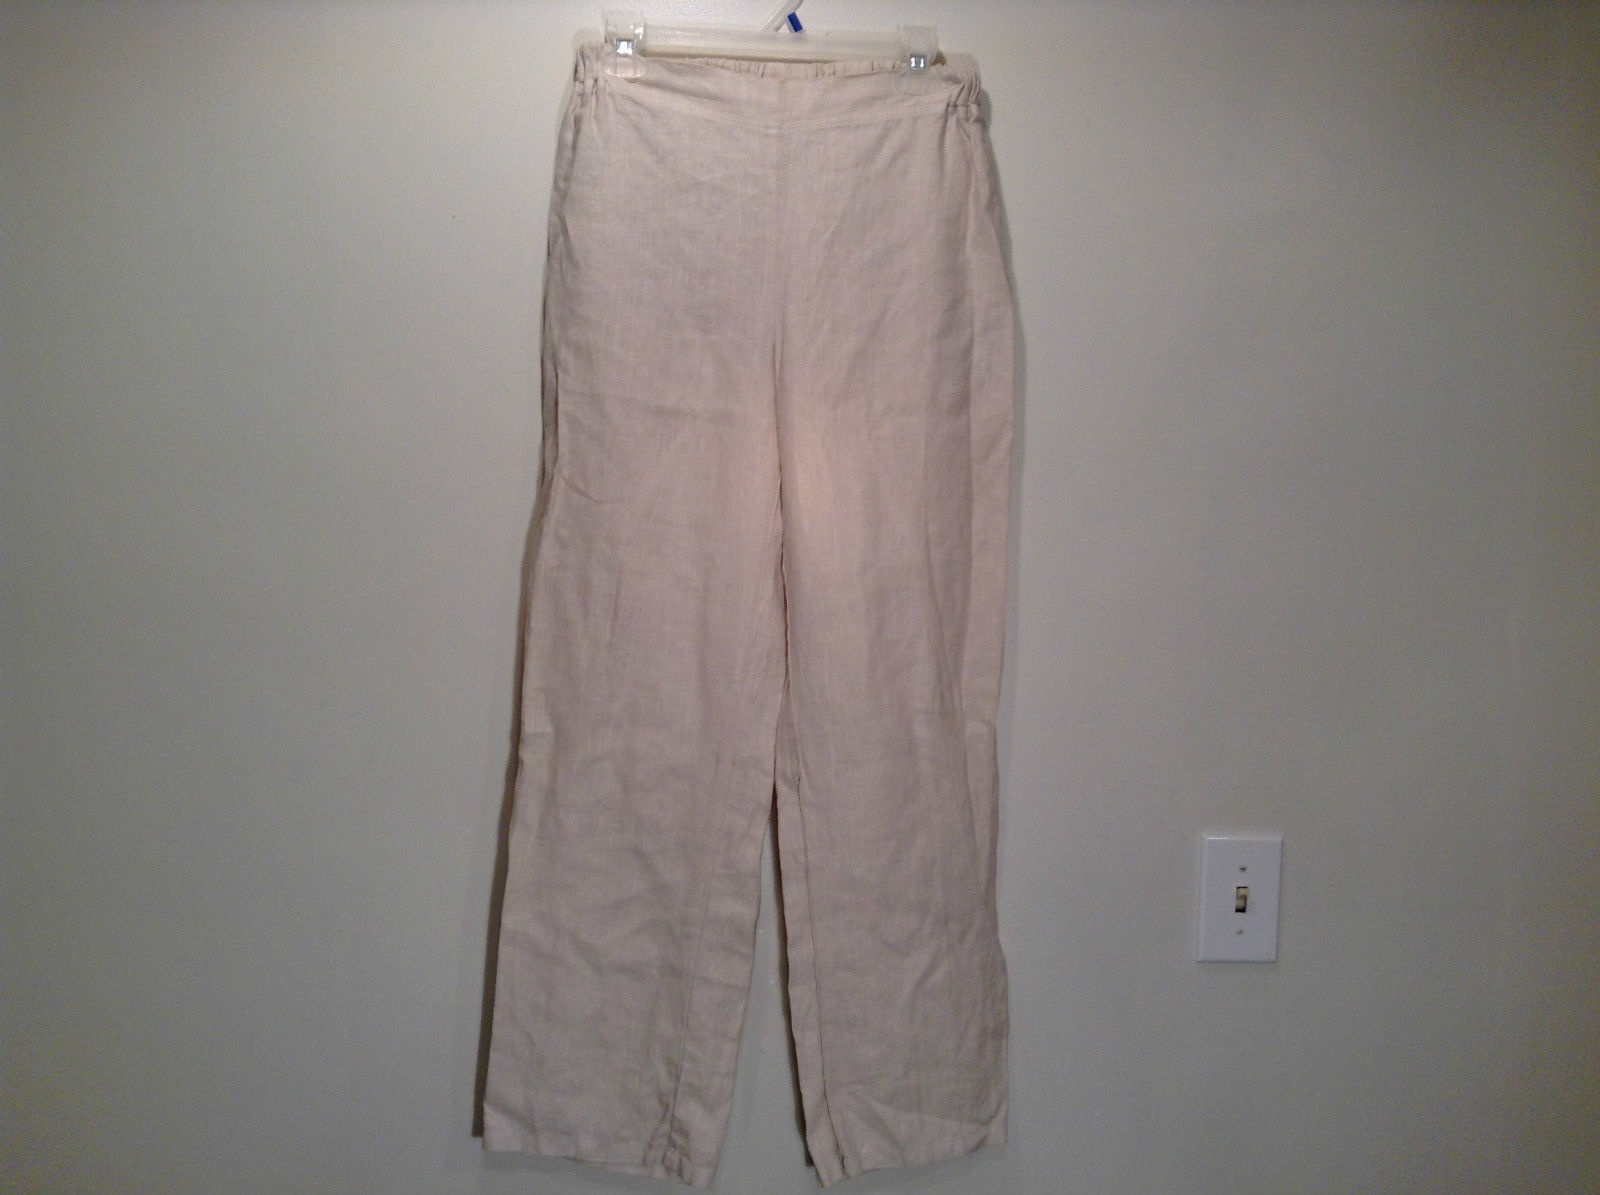 Size Small Icantoo Natural Colored 100 Percent Linen Pants Stretchy Waist